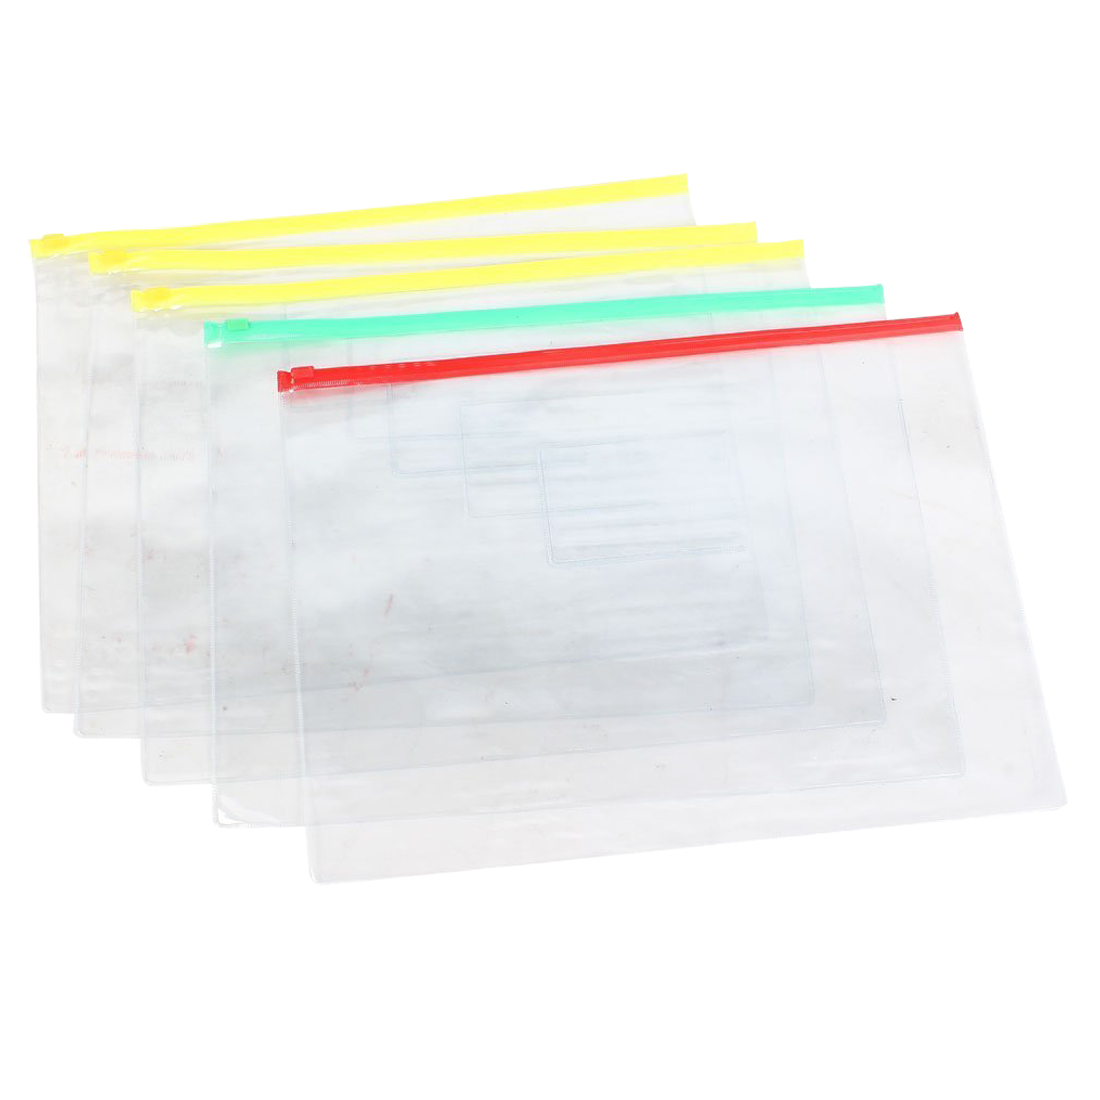 5 Pcs Clear Plastic Water Proof Pen A4 File Paper Ziplock Bags Folders